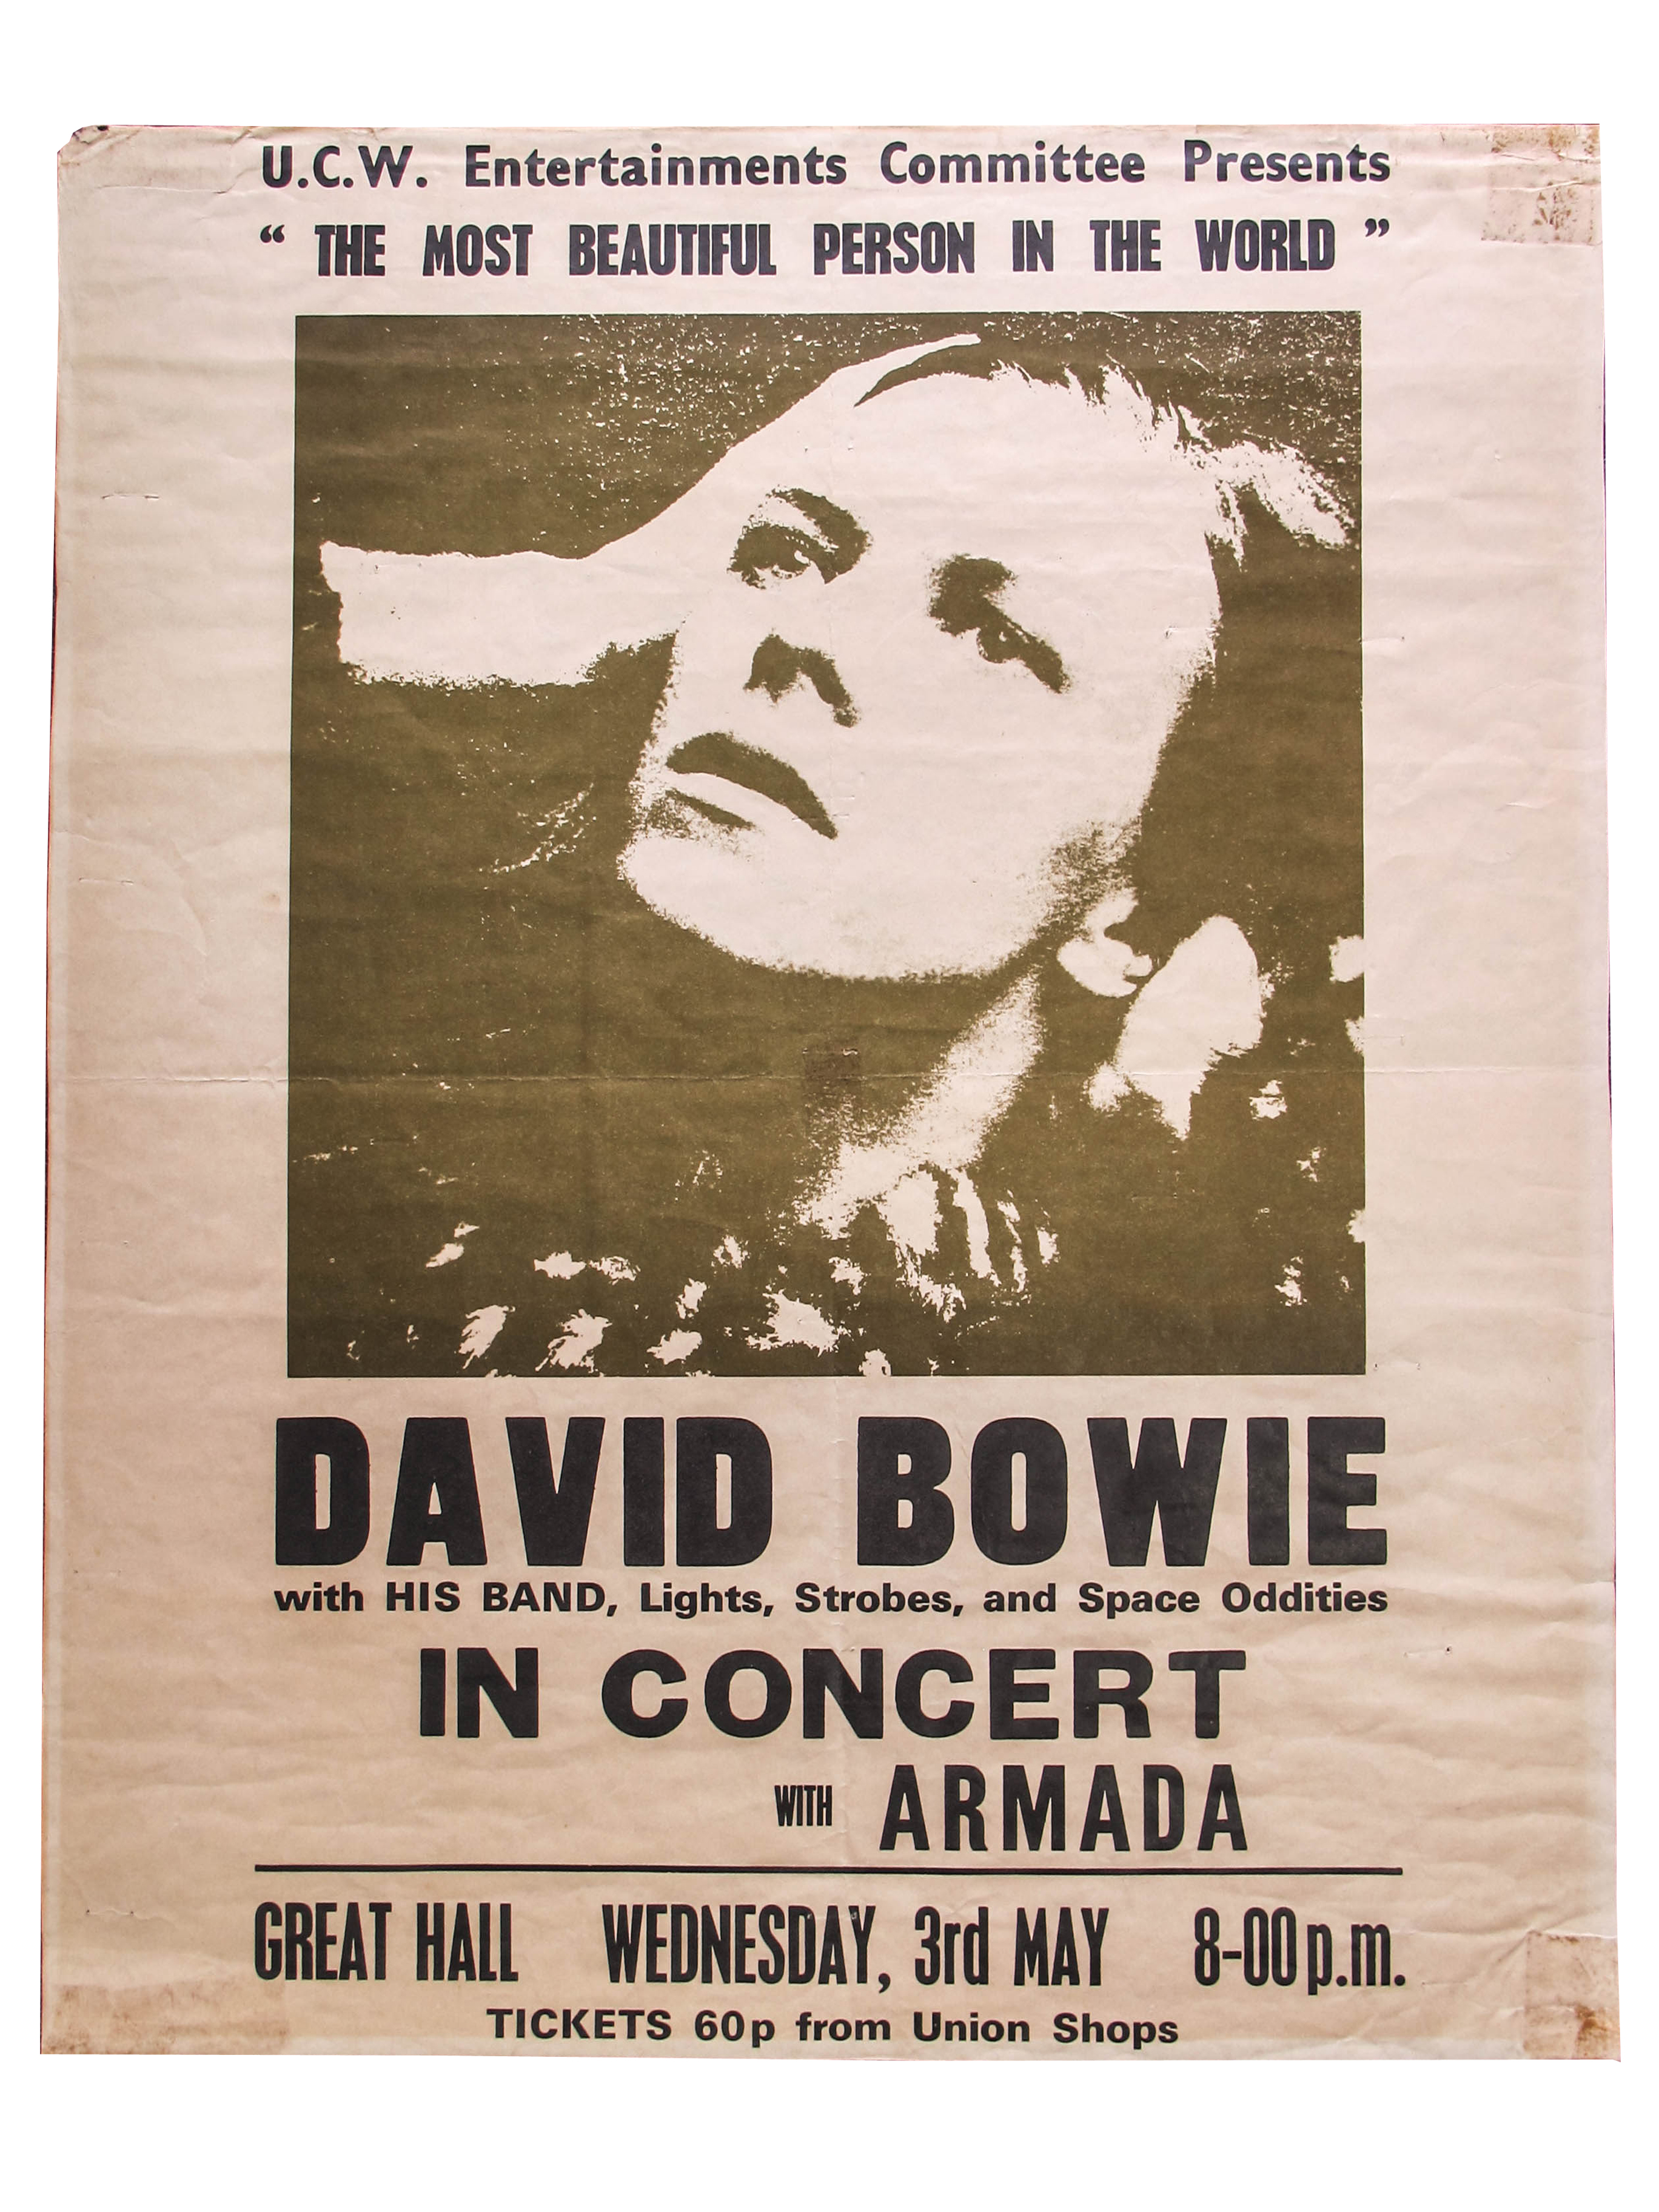 Lot 46 - A Rare David Bowie 1972 Concert Poster - 'David Bowie with His Band, Lights, Strobes and Space